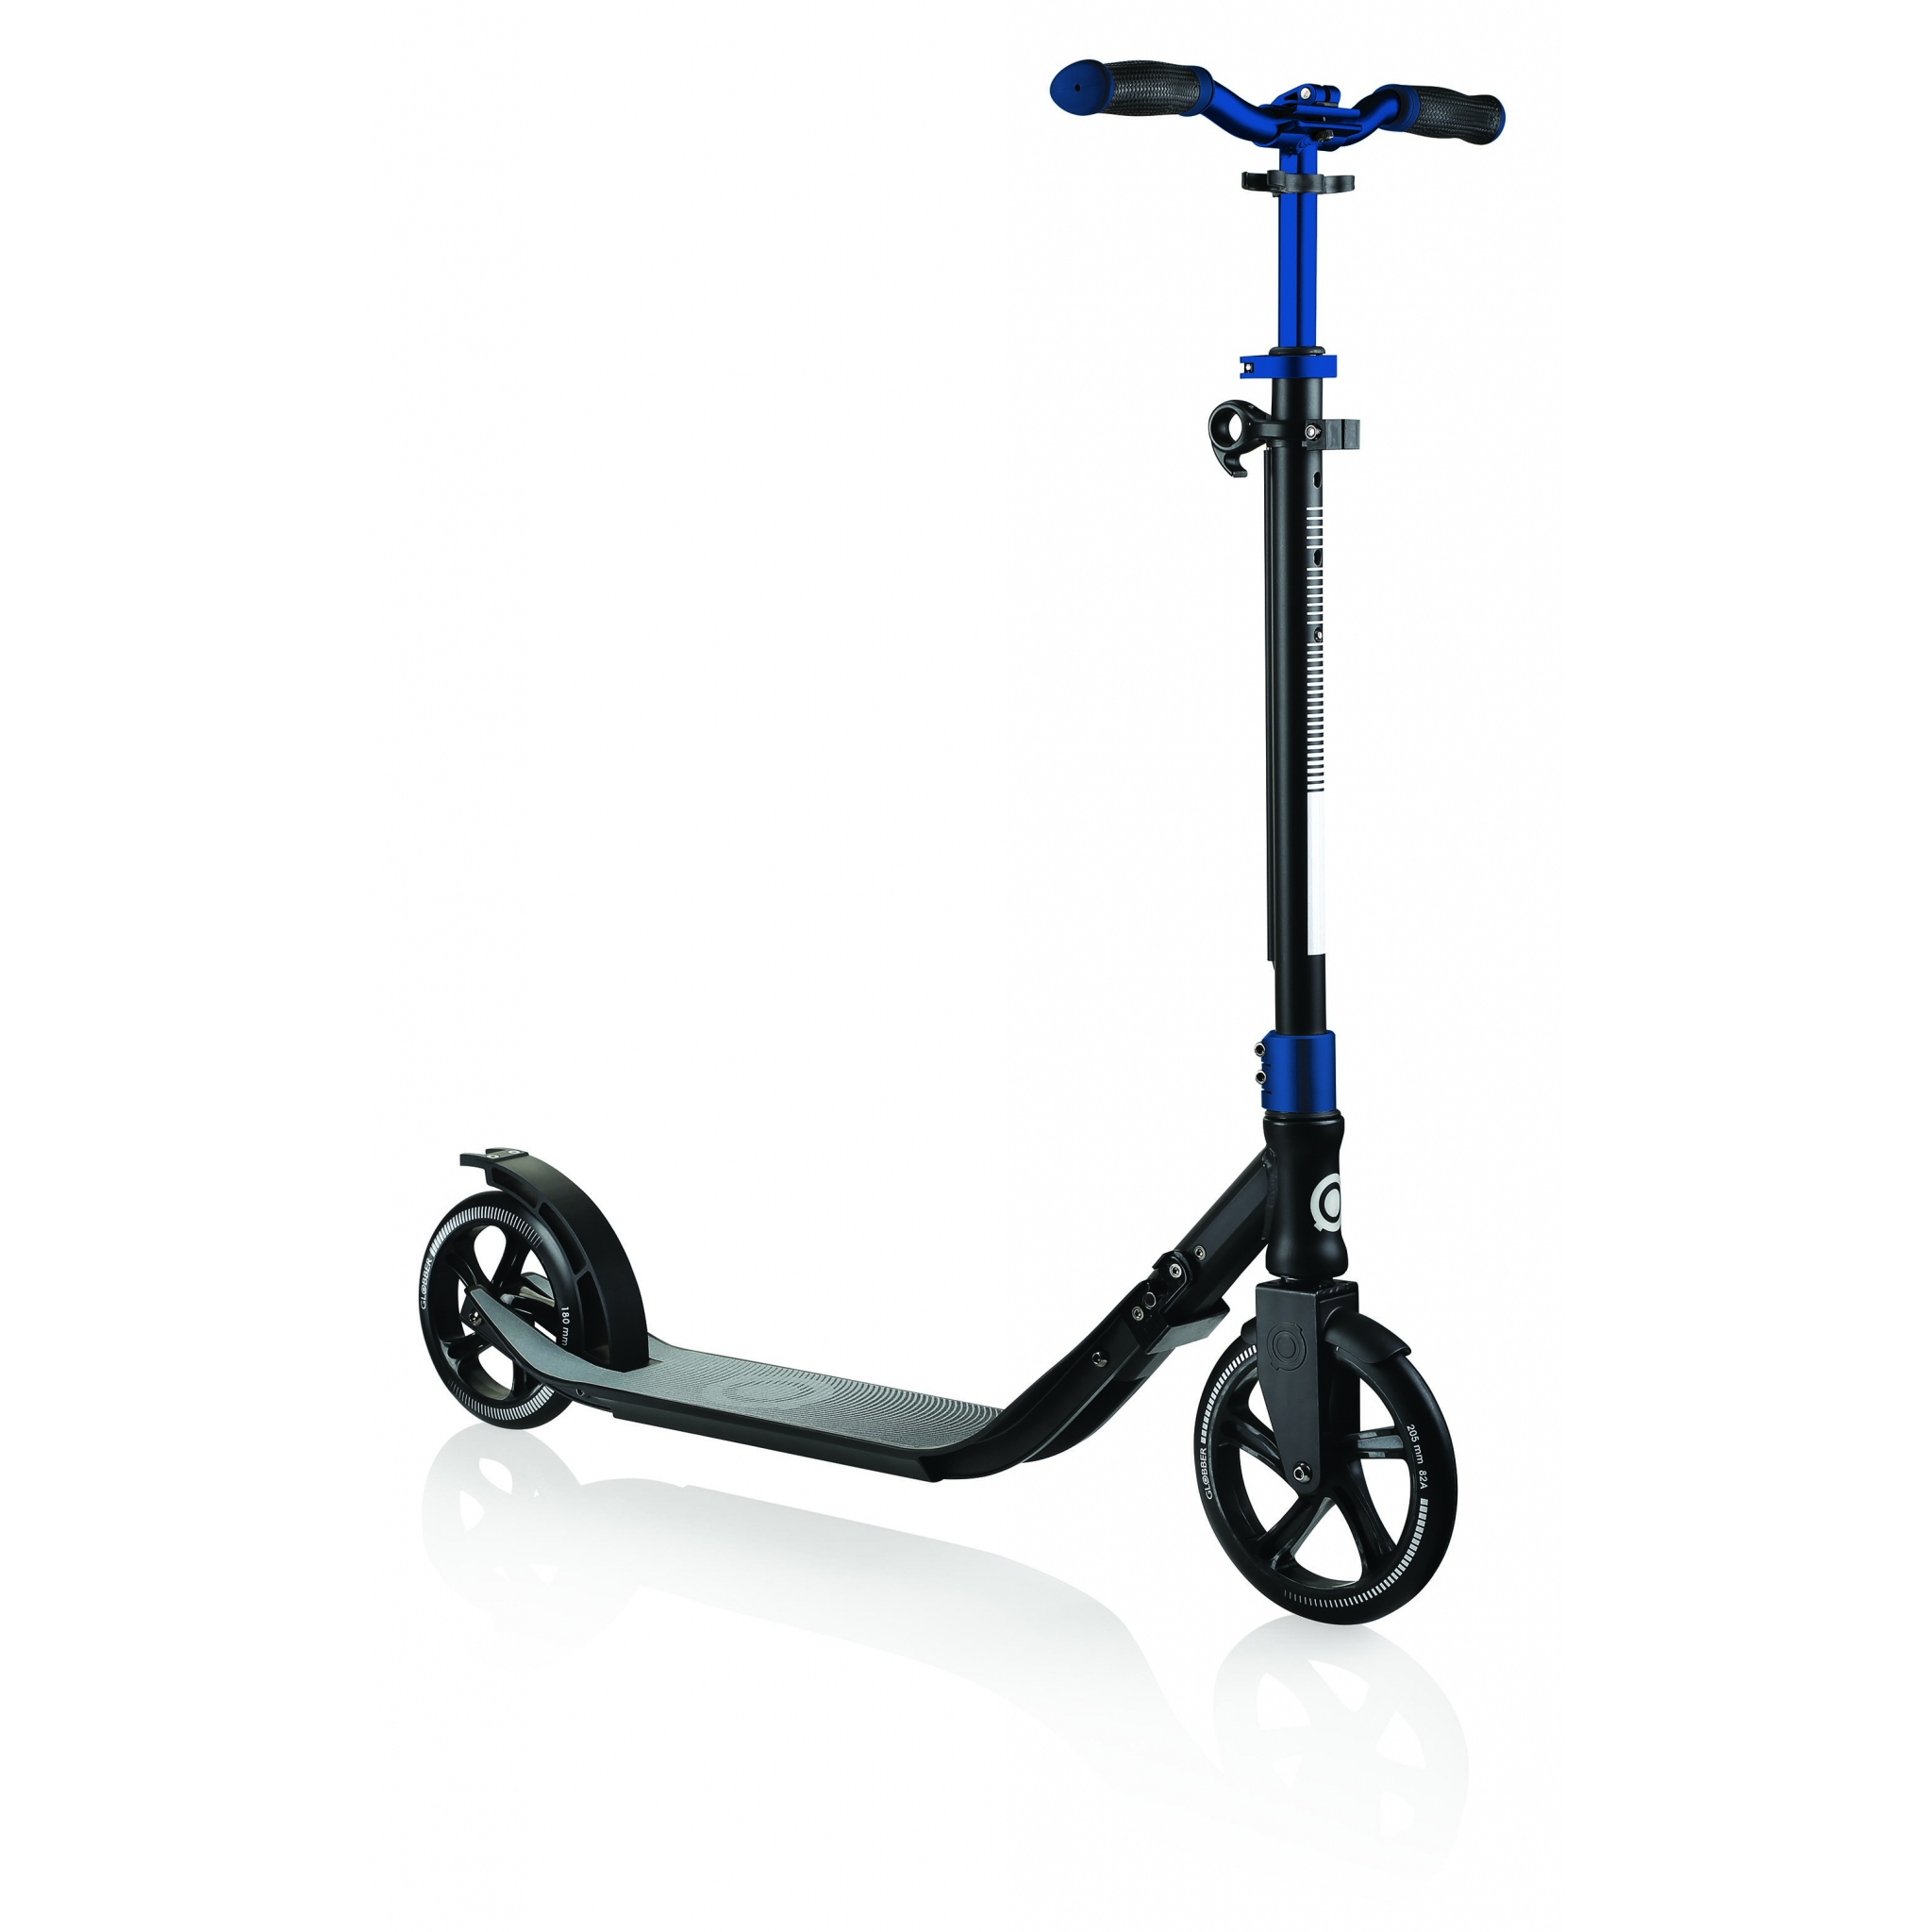 Globber-ONE-NL-205-180-DUO-2-wheel-adjustable-scooter-for-adults-cobalt-blue